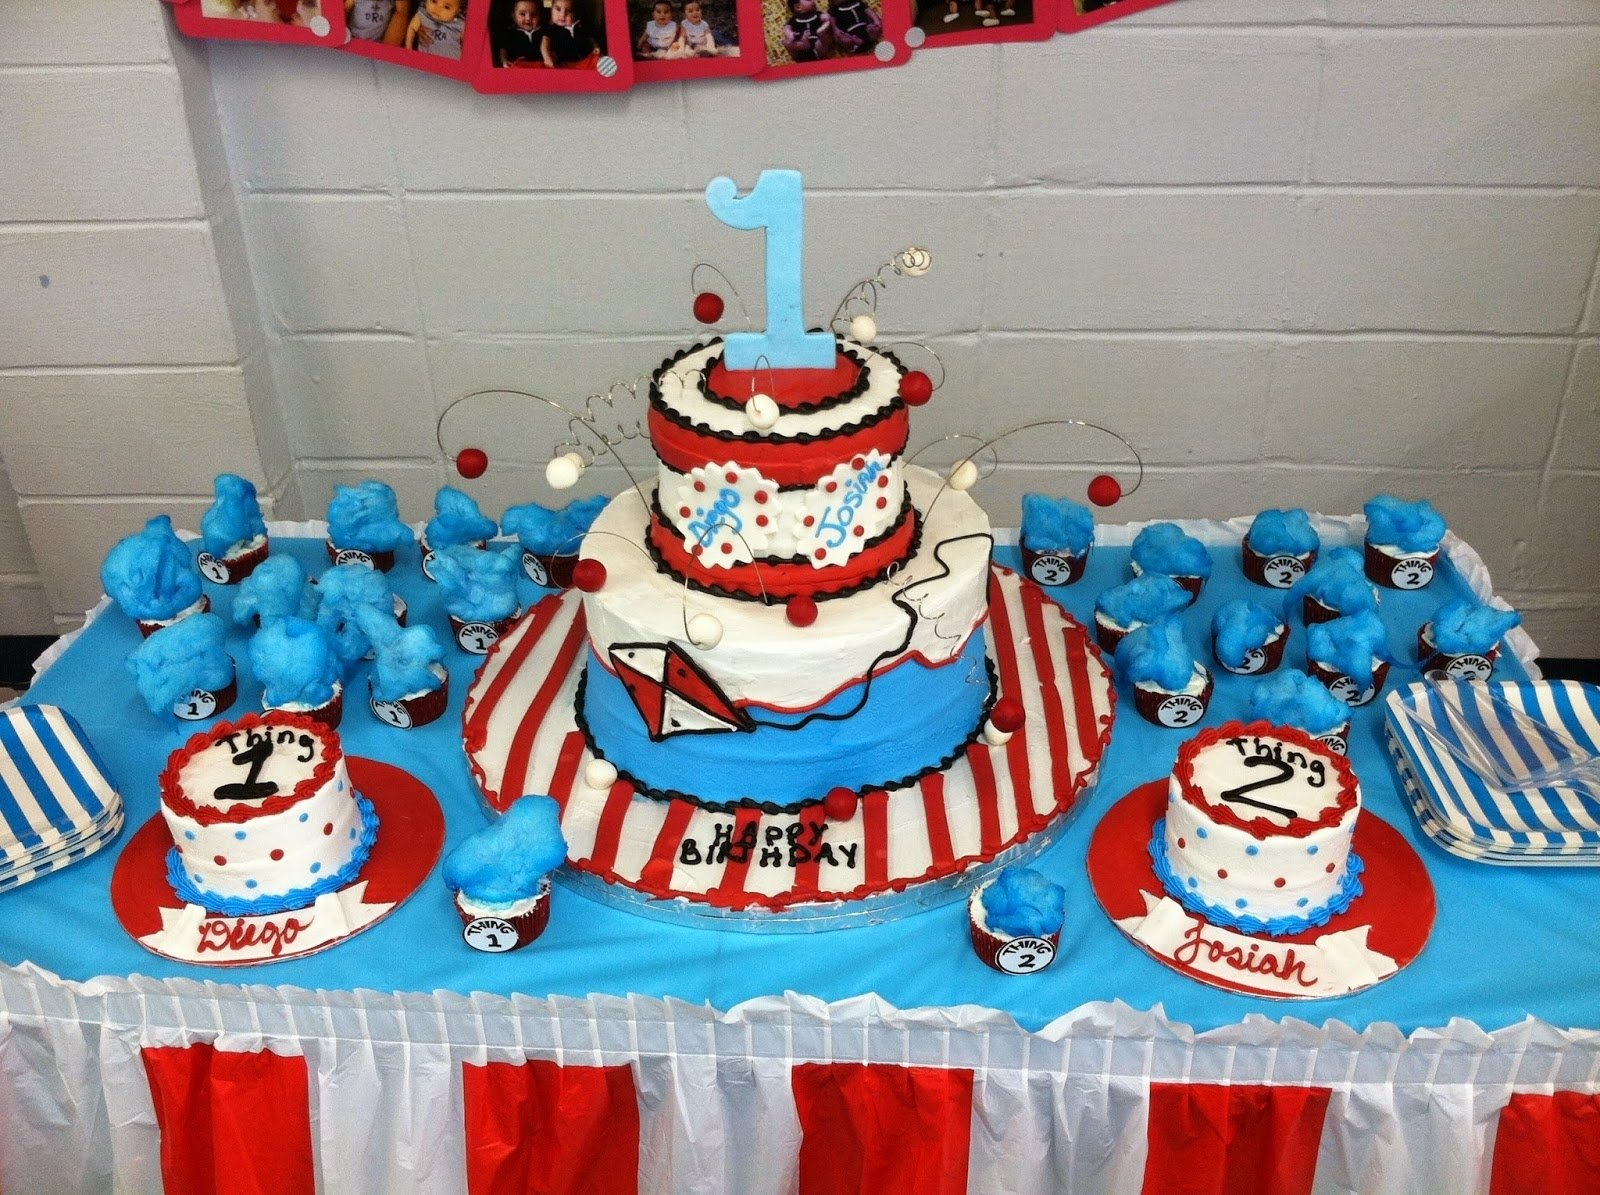 10 Awesome Thing 1 And Thing 2 Cake Ideas nola parties and playdates thing one and thing two party 2020